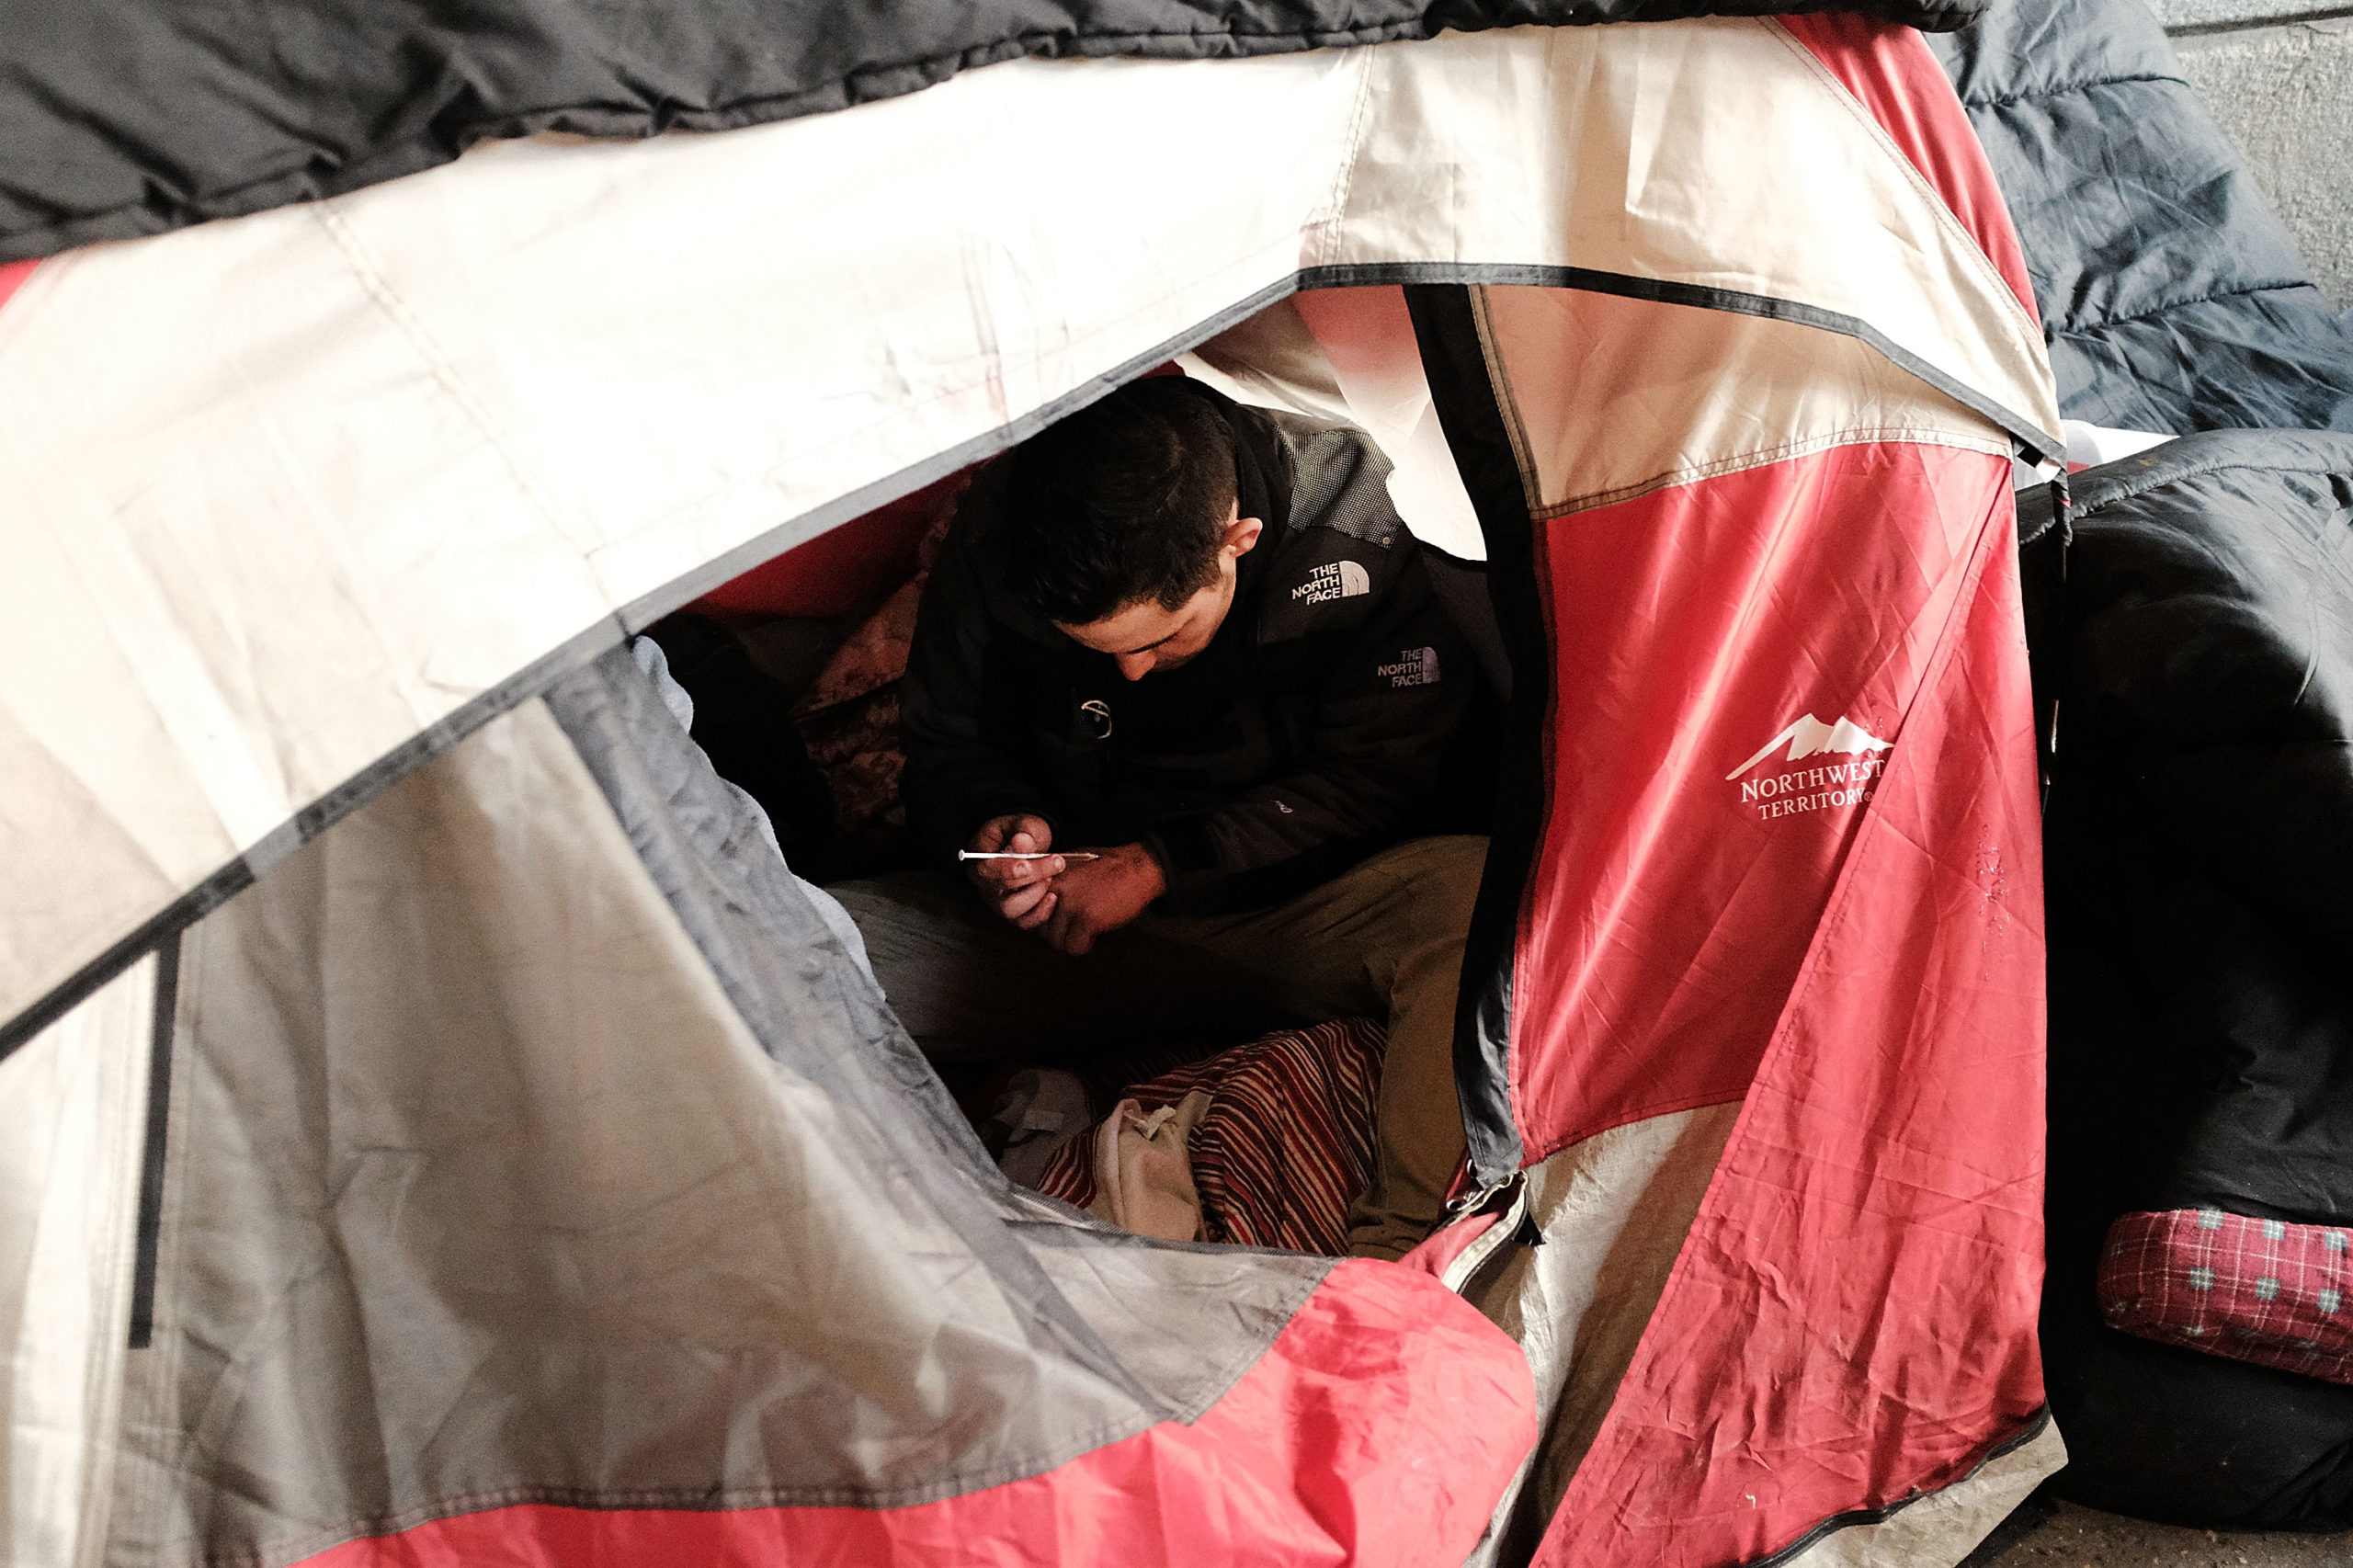 A man uses heroin in a tent under a bridge where he lives with other addicts in 2018 in Philadelphia, Pennsylvania. (Spencer Platt/Getty Images)